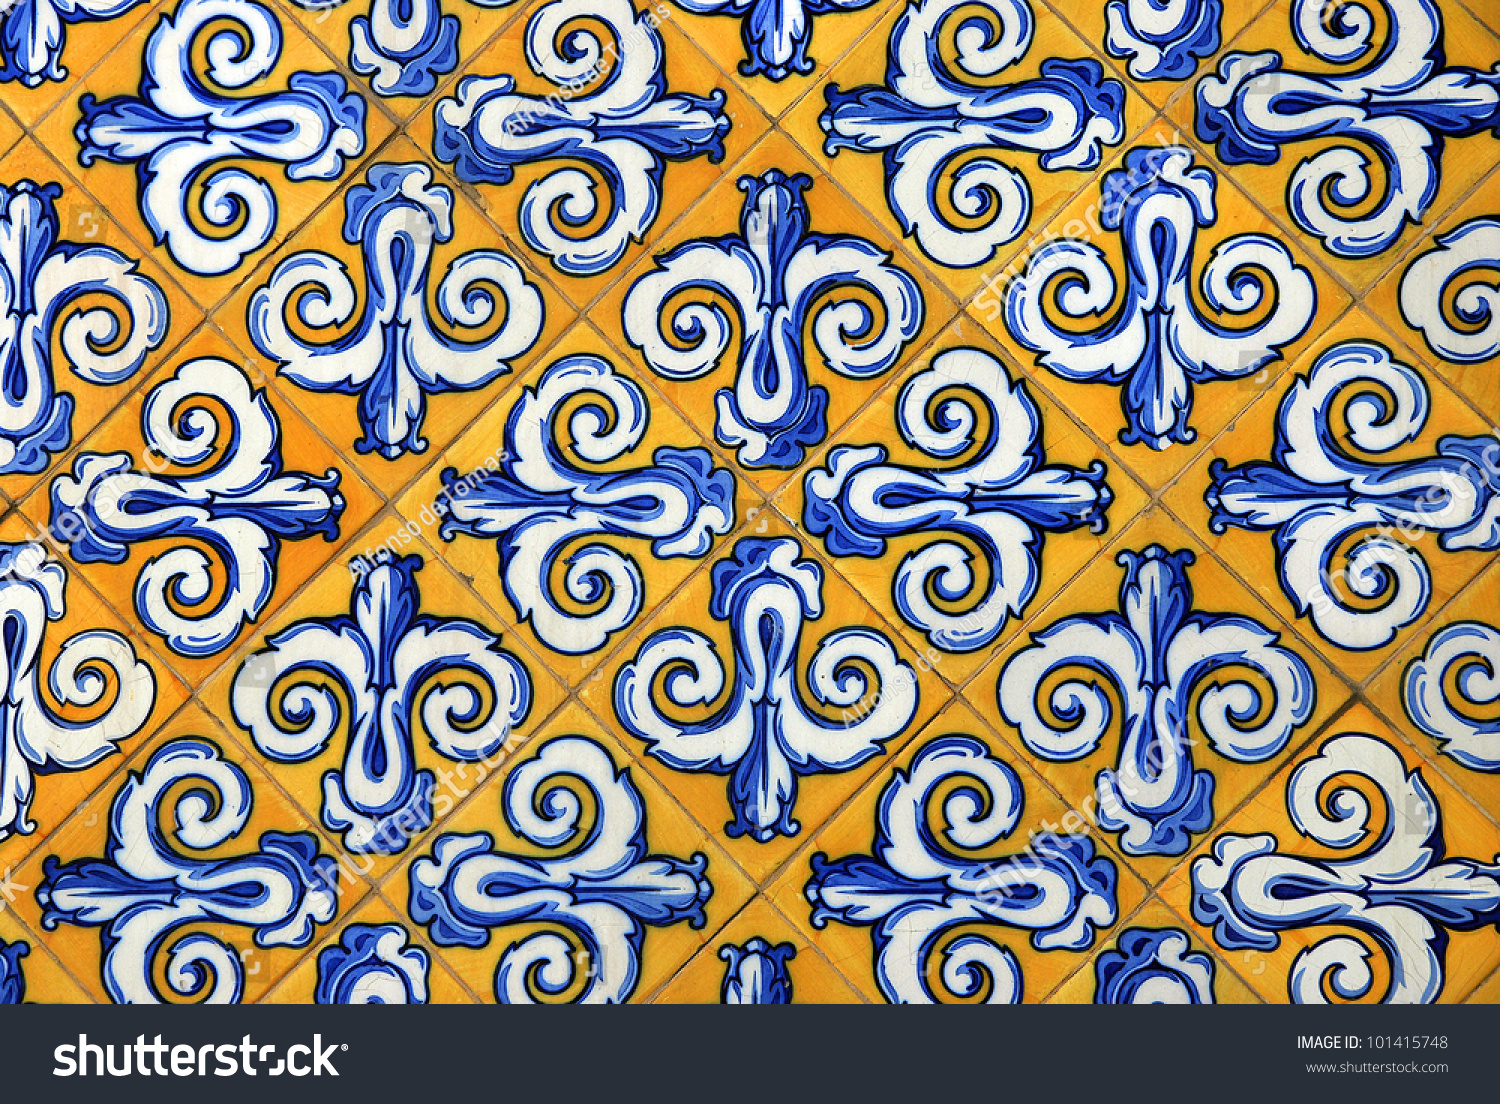 Traditional spanish ceramic tiles yellow blue stock photo traditional spanish ceramic tiles in yellow and blue dailygadgetfo Images